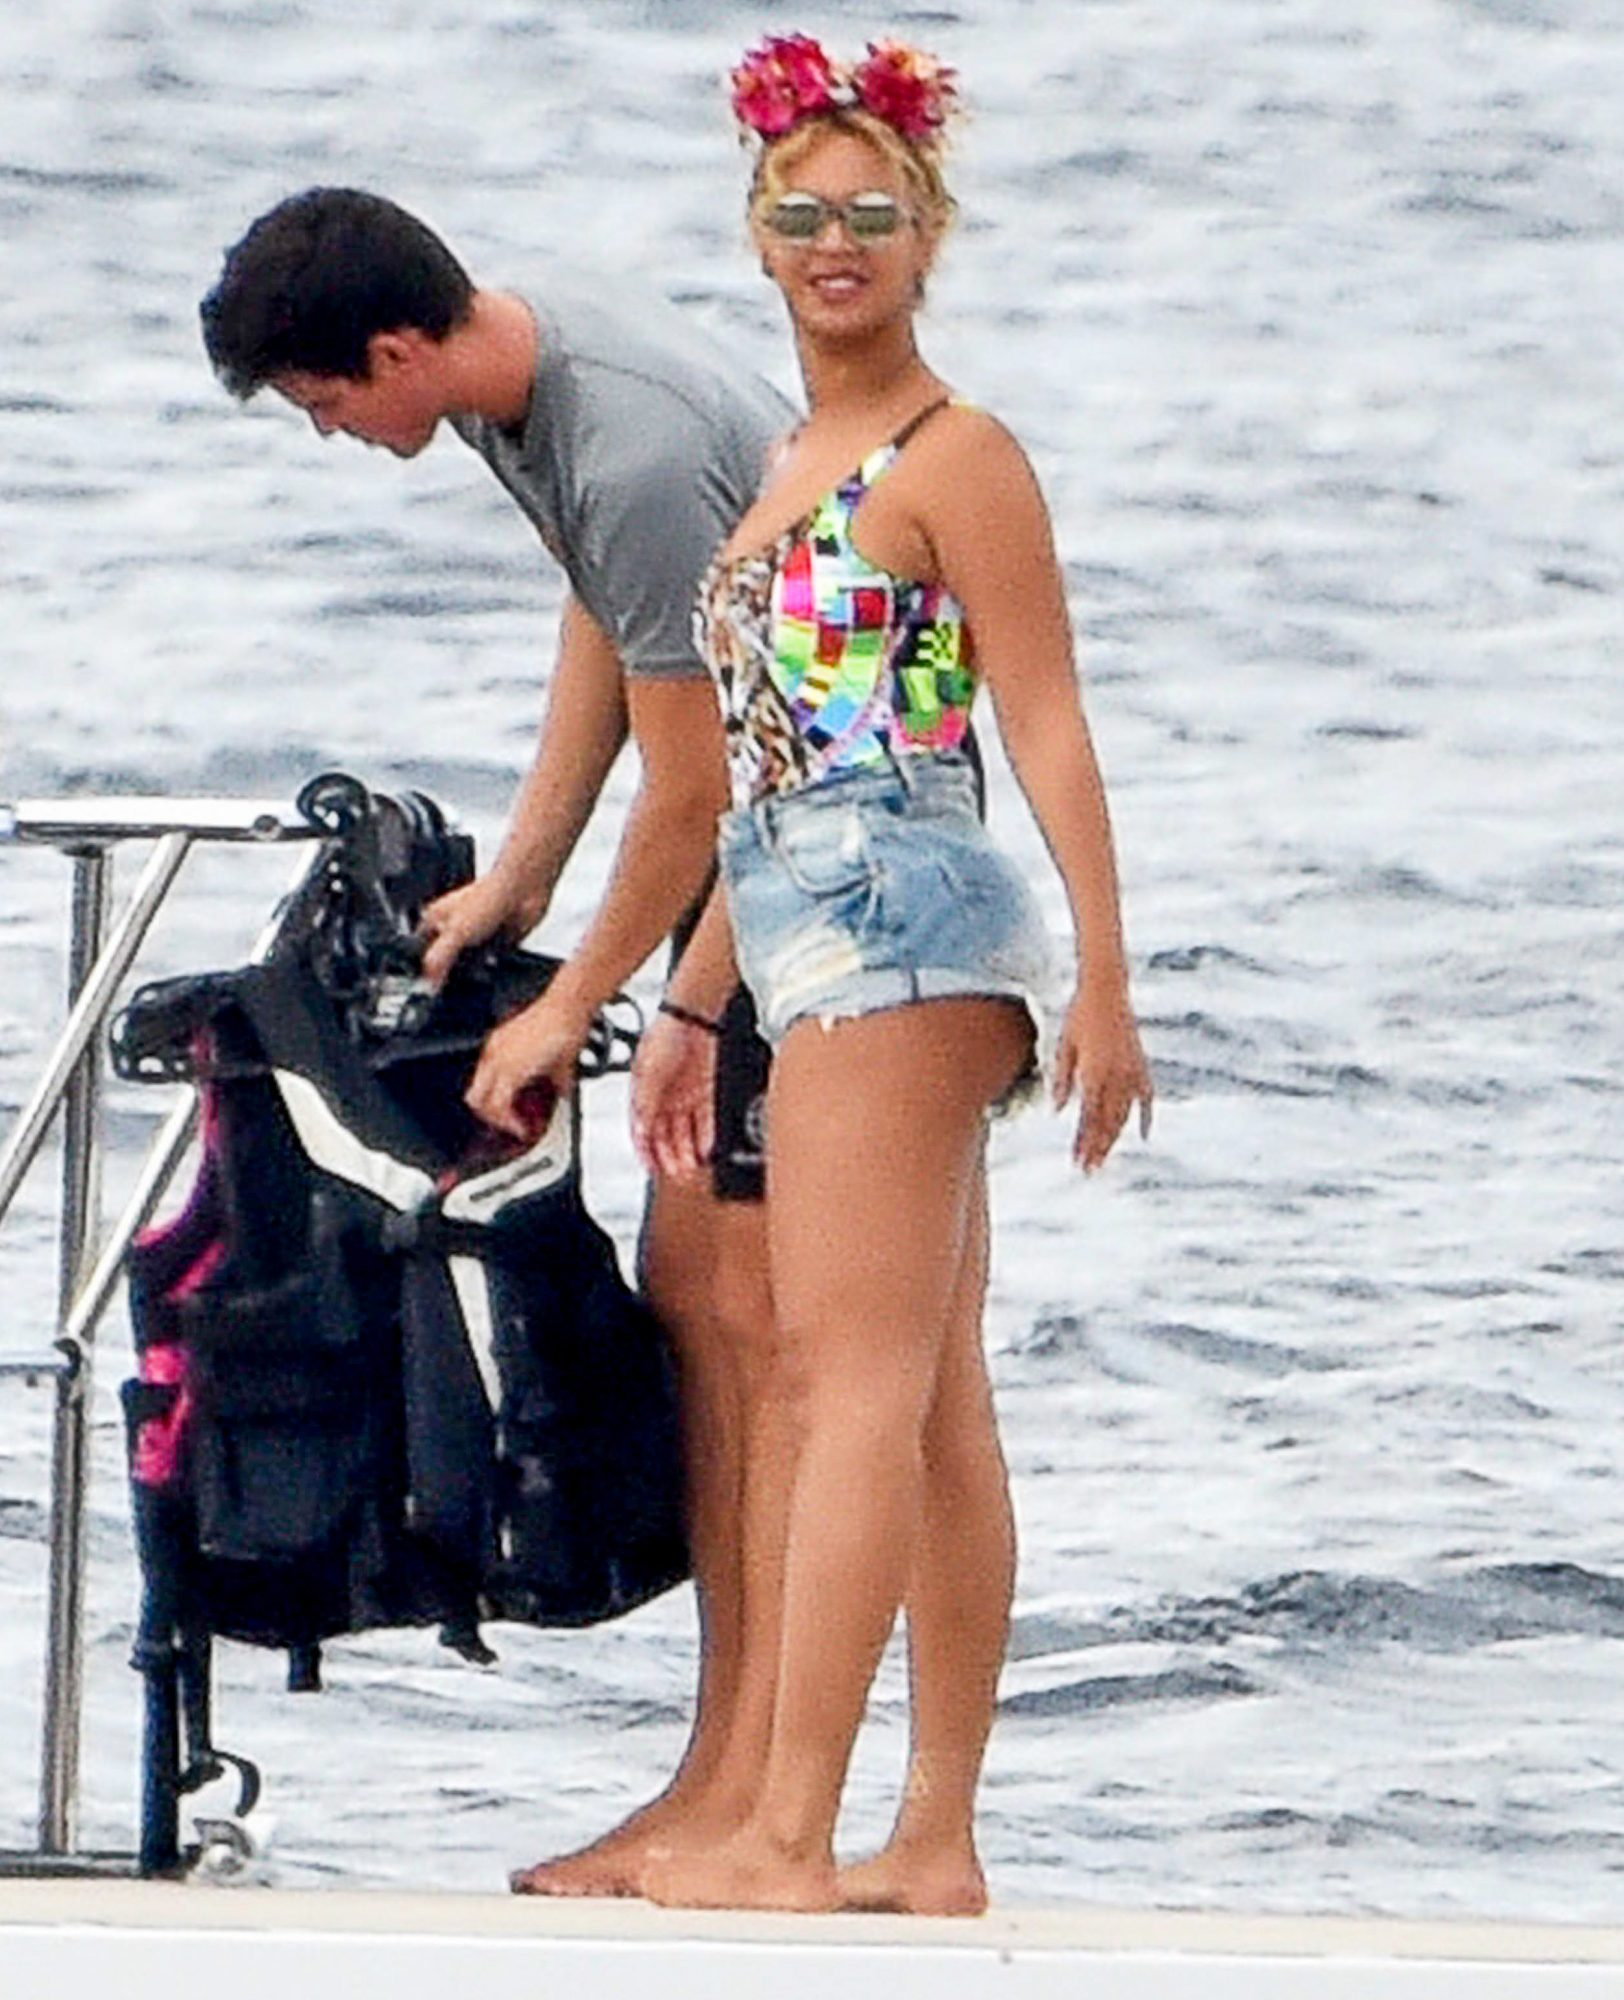 Beyoncé Wears a Playful One-Piece Bathing Suit While on Vacation in Italy